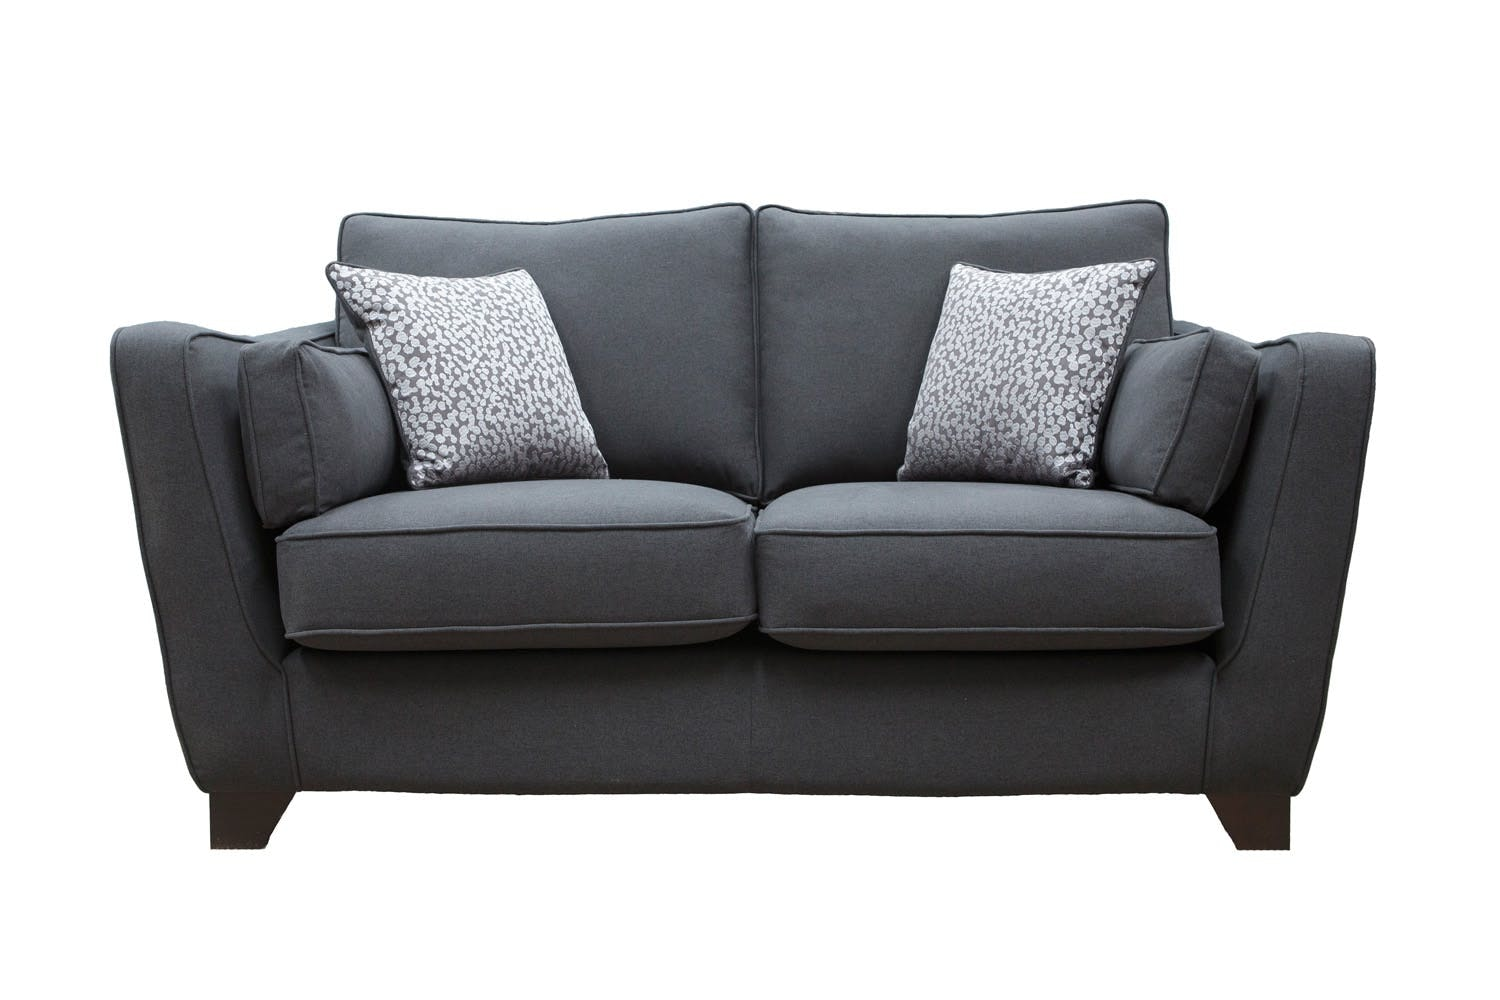 Crystal 2 Seater Sofa